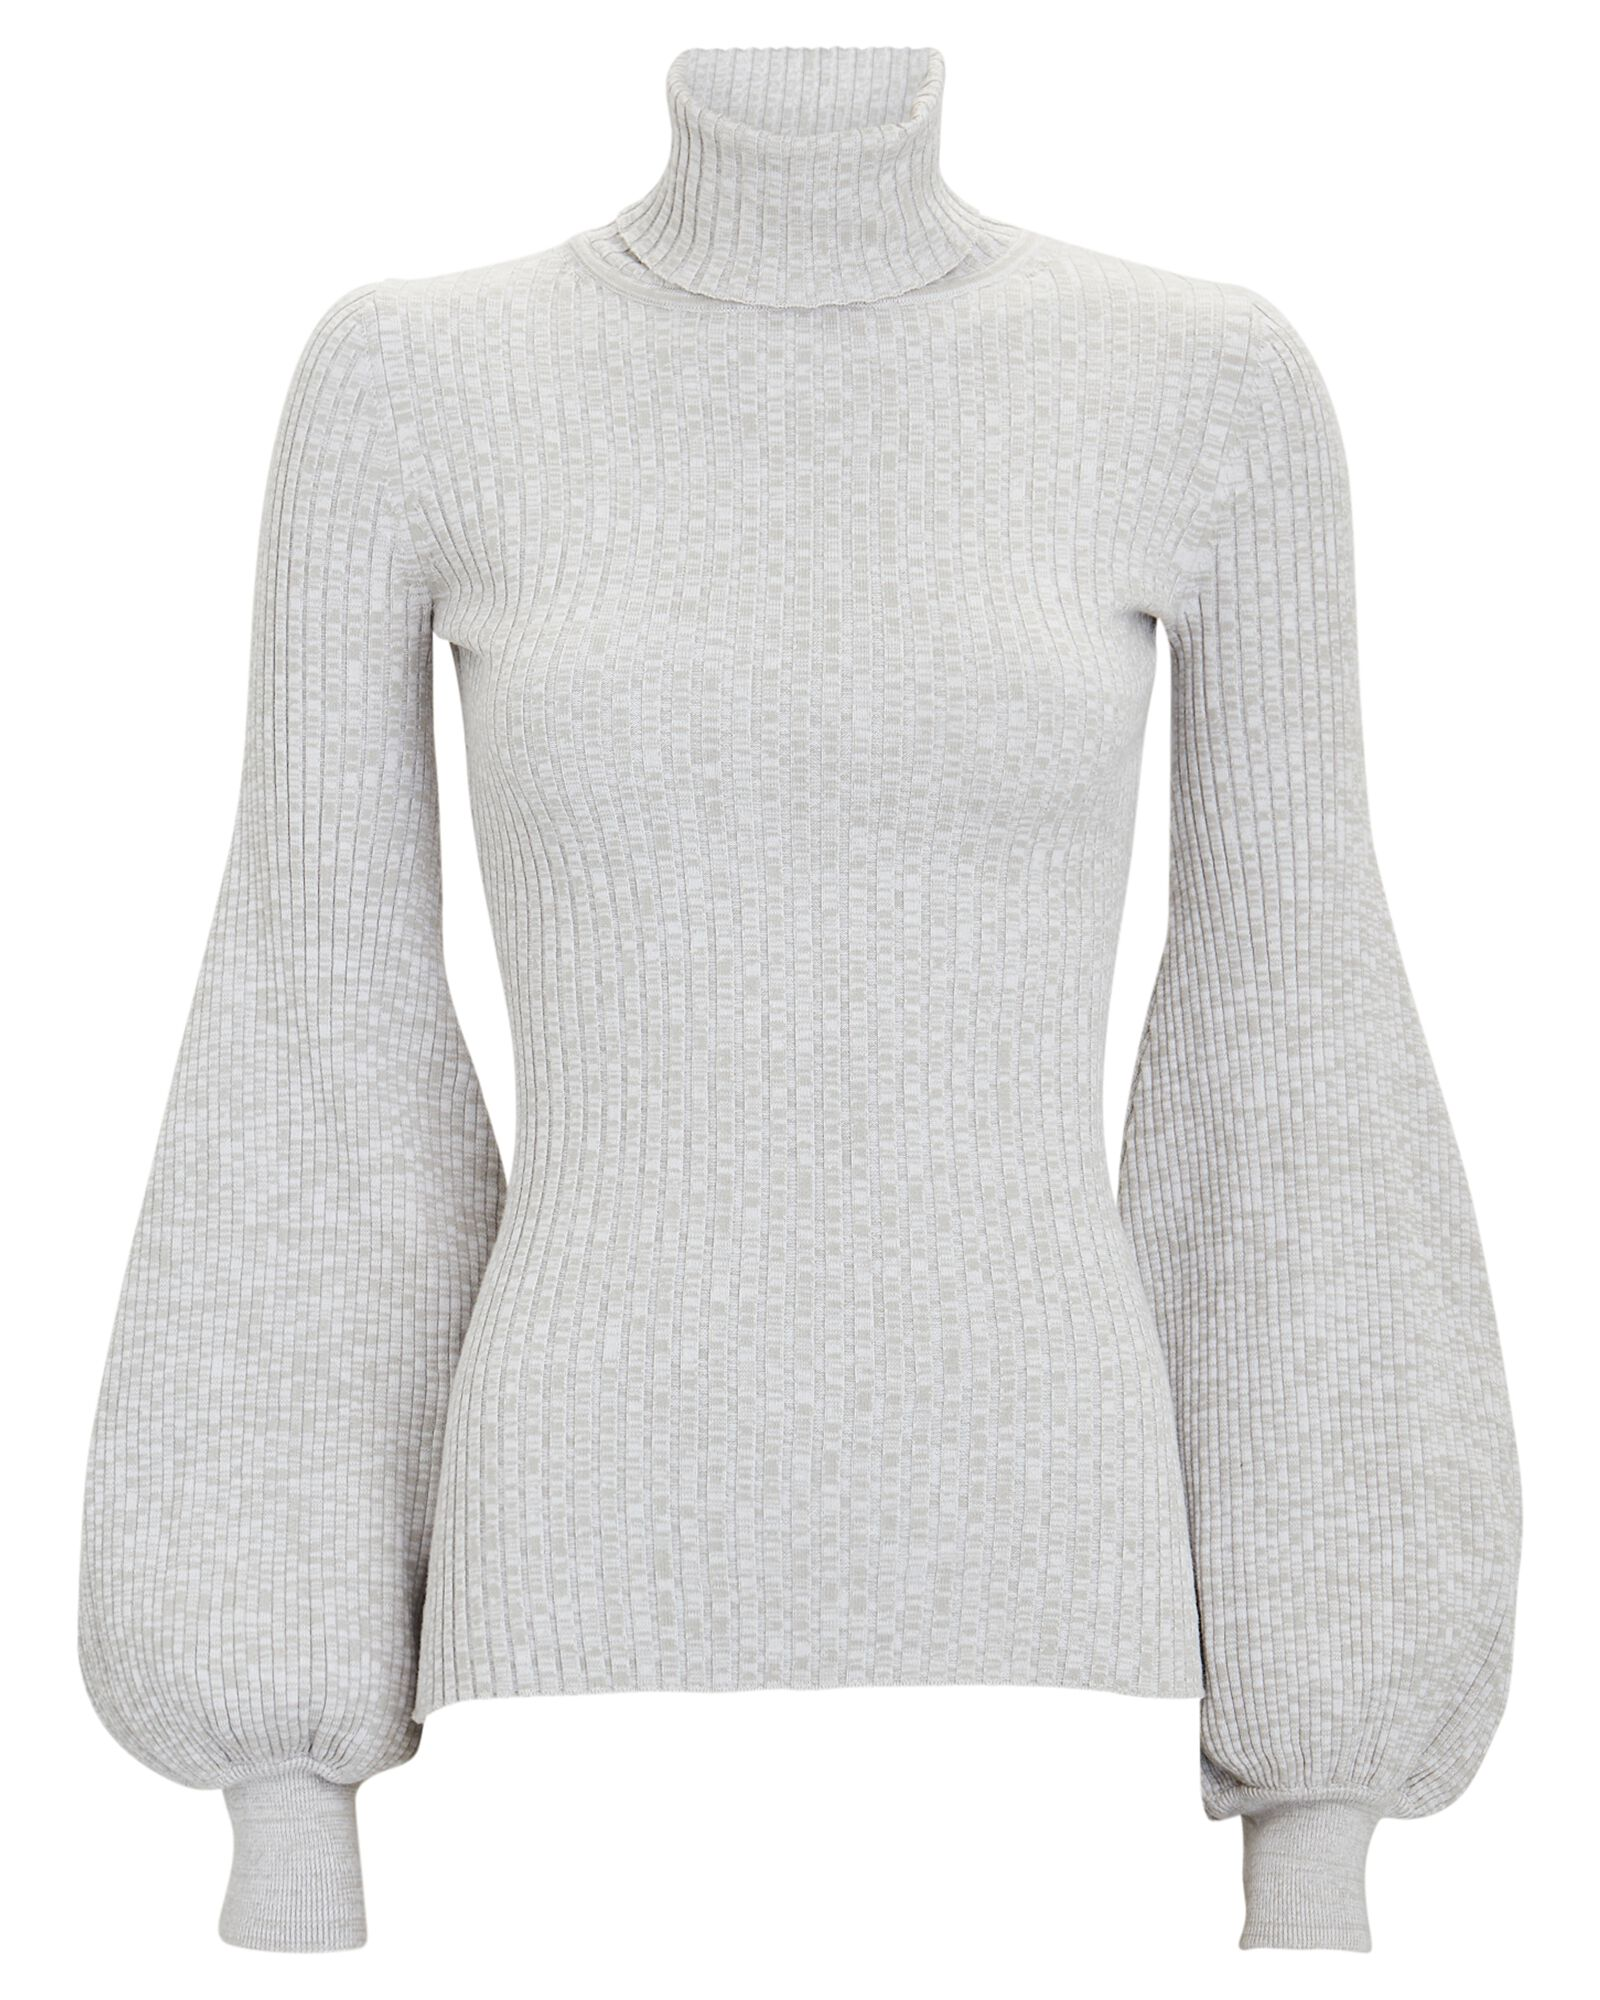 Yara Rib Knit Turtleneck Top, LIGHT GREY, hi-res